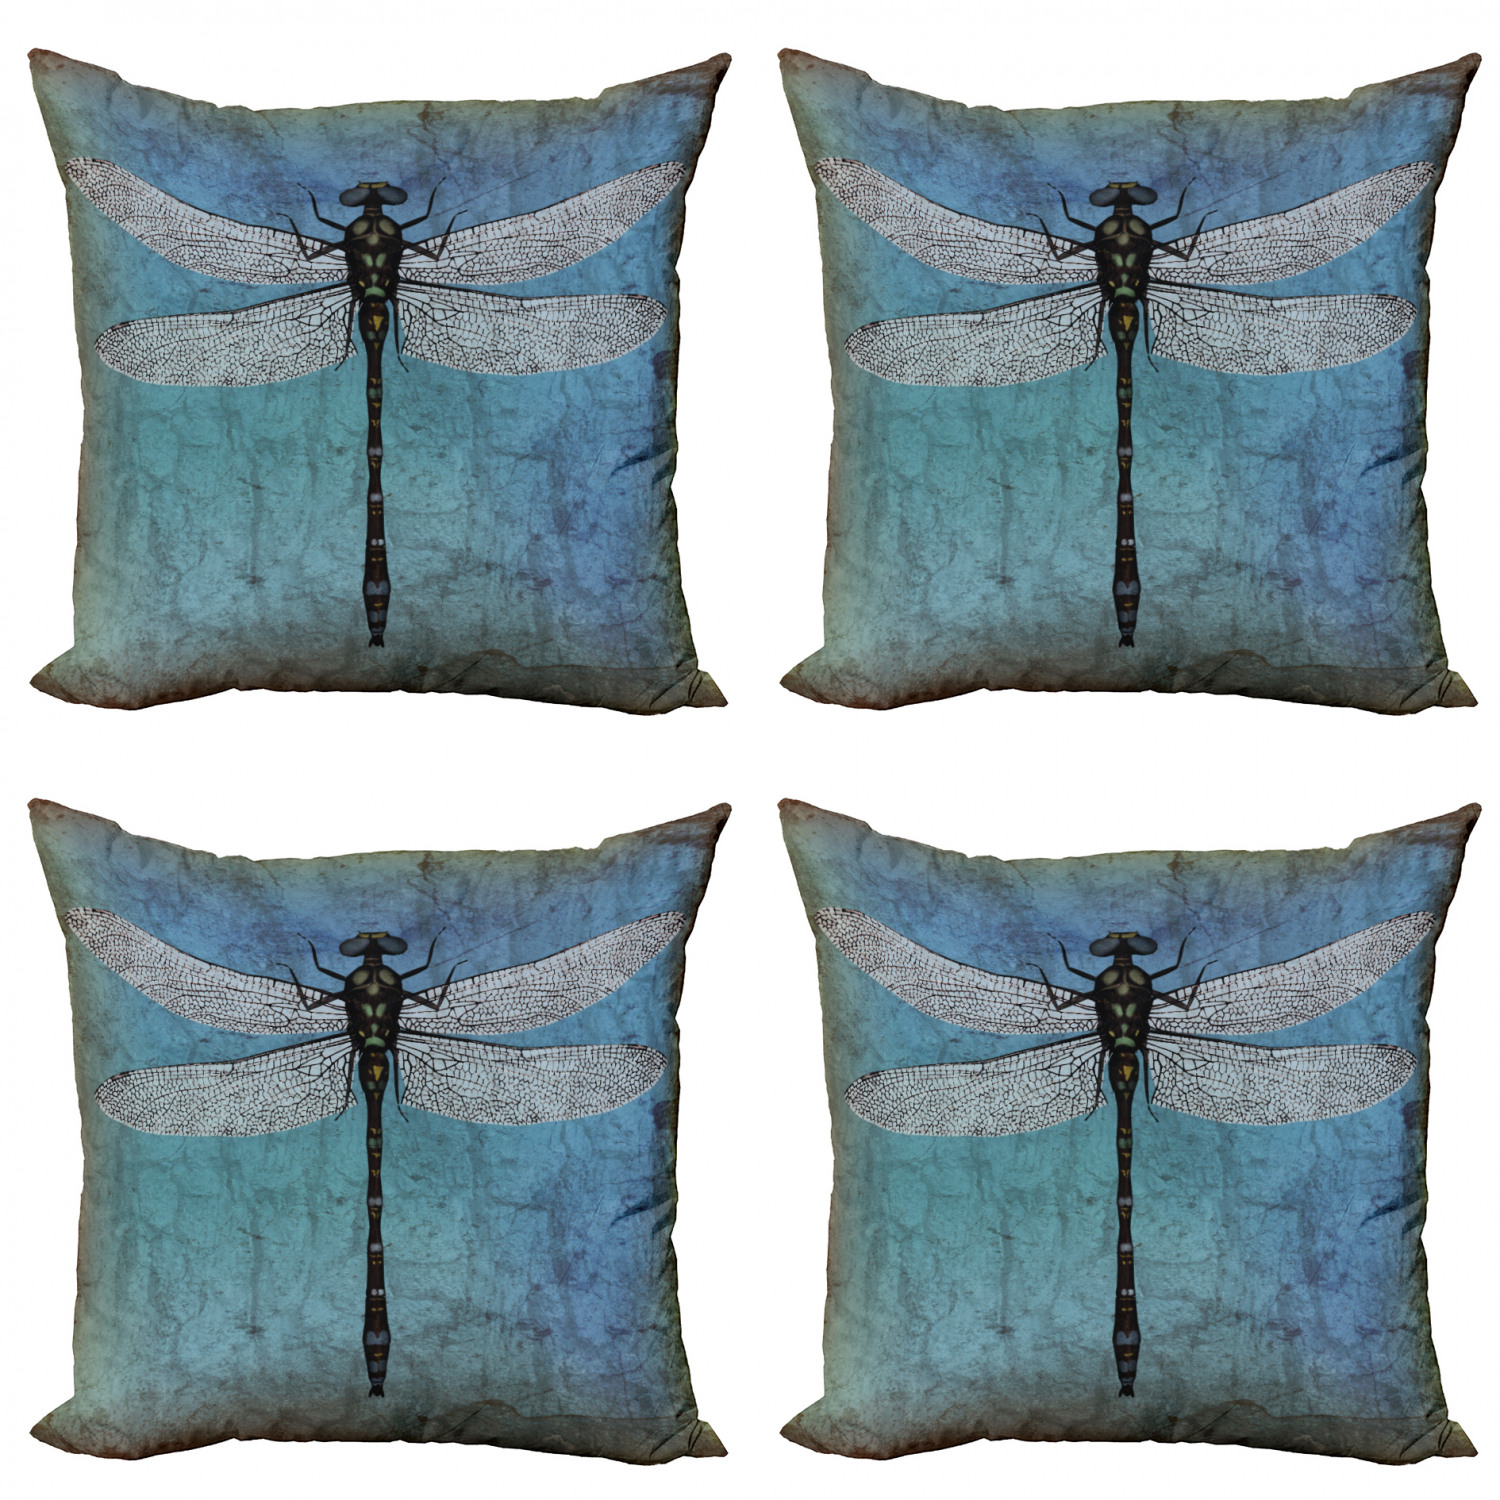 Dragonfly Throw Pillow Cushion Case Pack Of 4 Grunge Vintage Old Backdrop And Dragonfly Bug Ombre Image Modern Accent Double Sided Print 4 Sizes Turquoise Dark Blue By Ambesonne Walmart Com Walmart Com